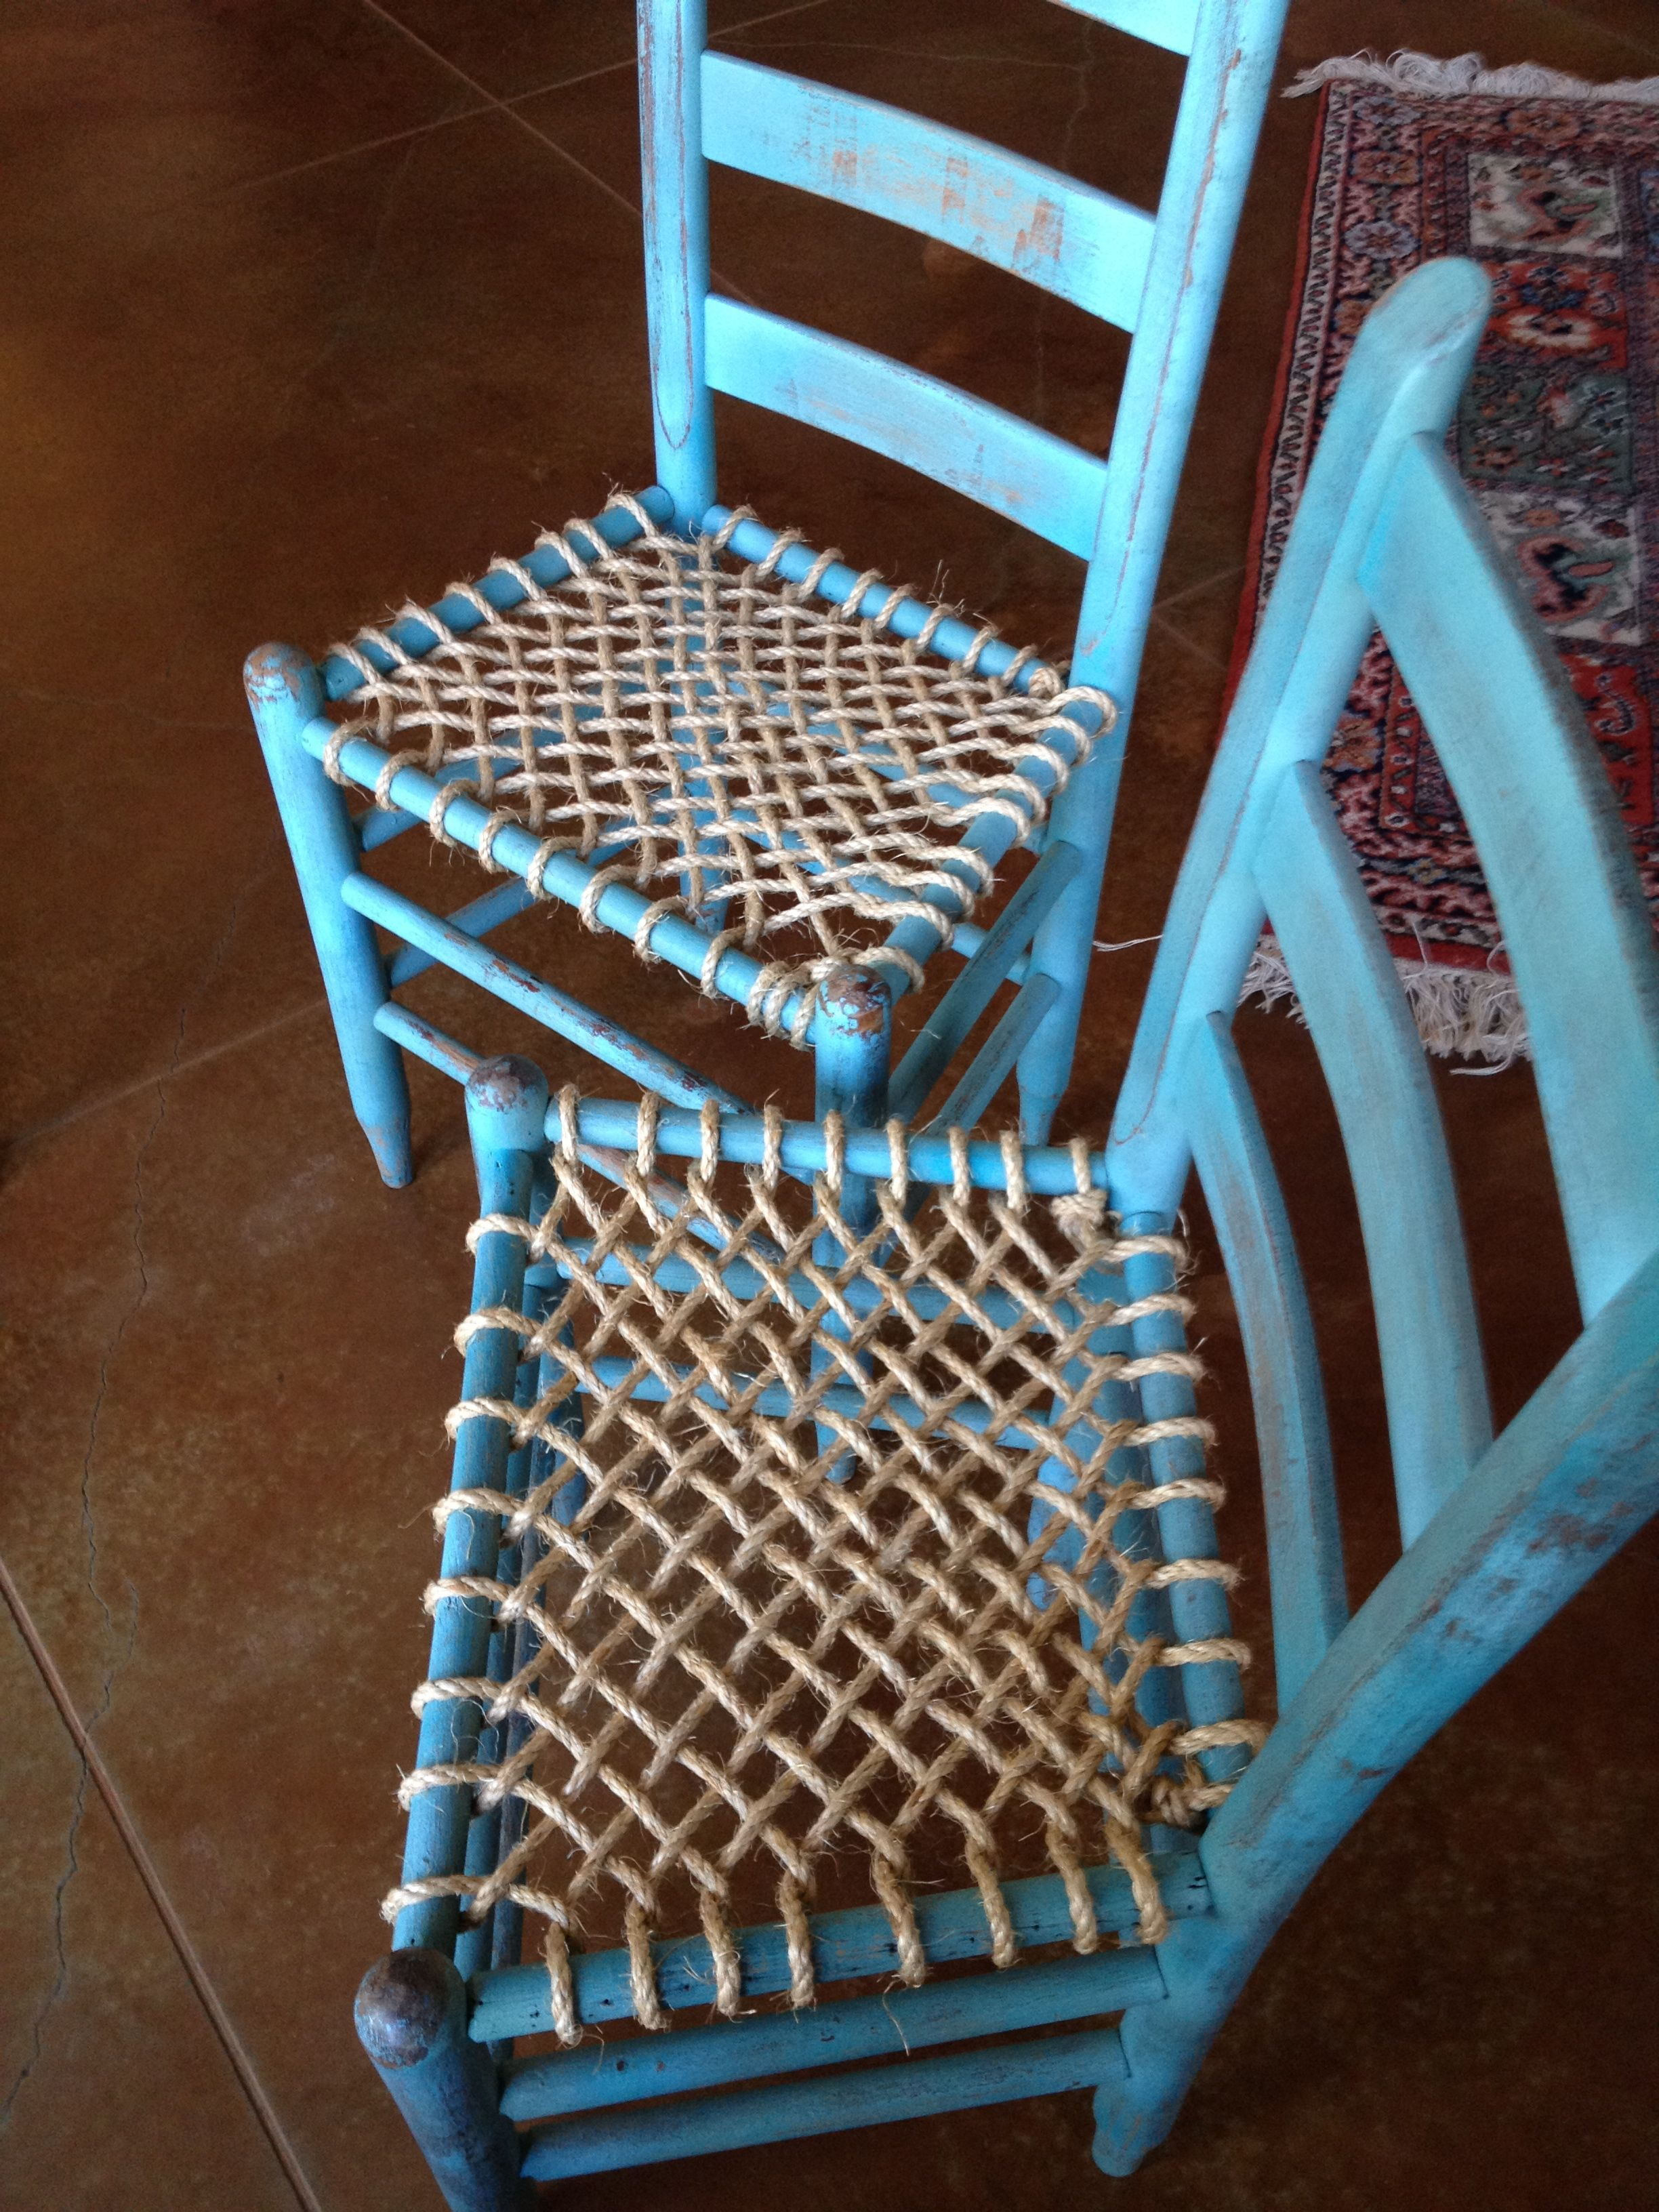 String Chair Seat Restaurant Chairs Used Chalk Paint And Rope Bottoms I Am Pleased With The